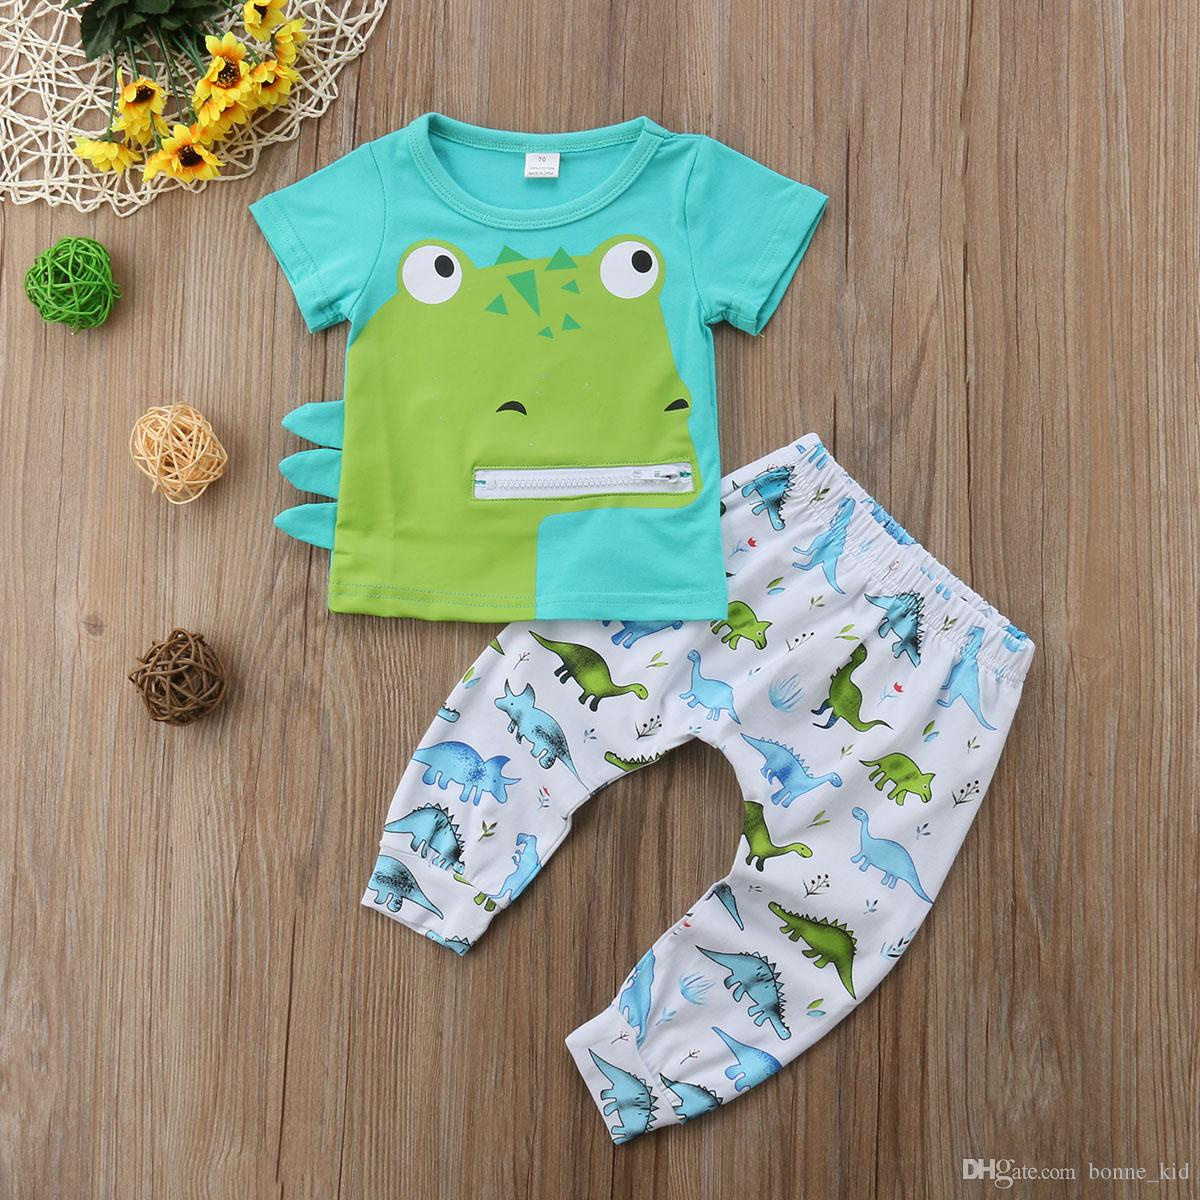 unisex set summer set dog outfit kids outfit baby beach outfit dog kids set, beach kids outfit dinosaur outfit 2 piece set outfit